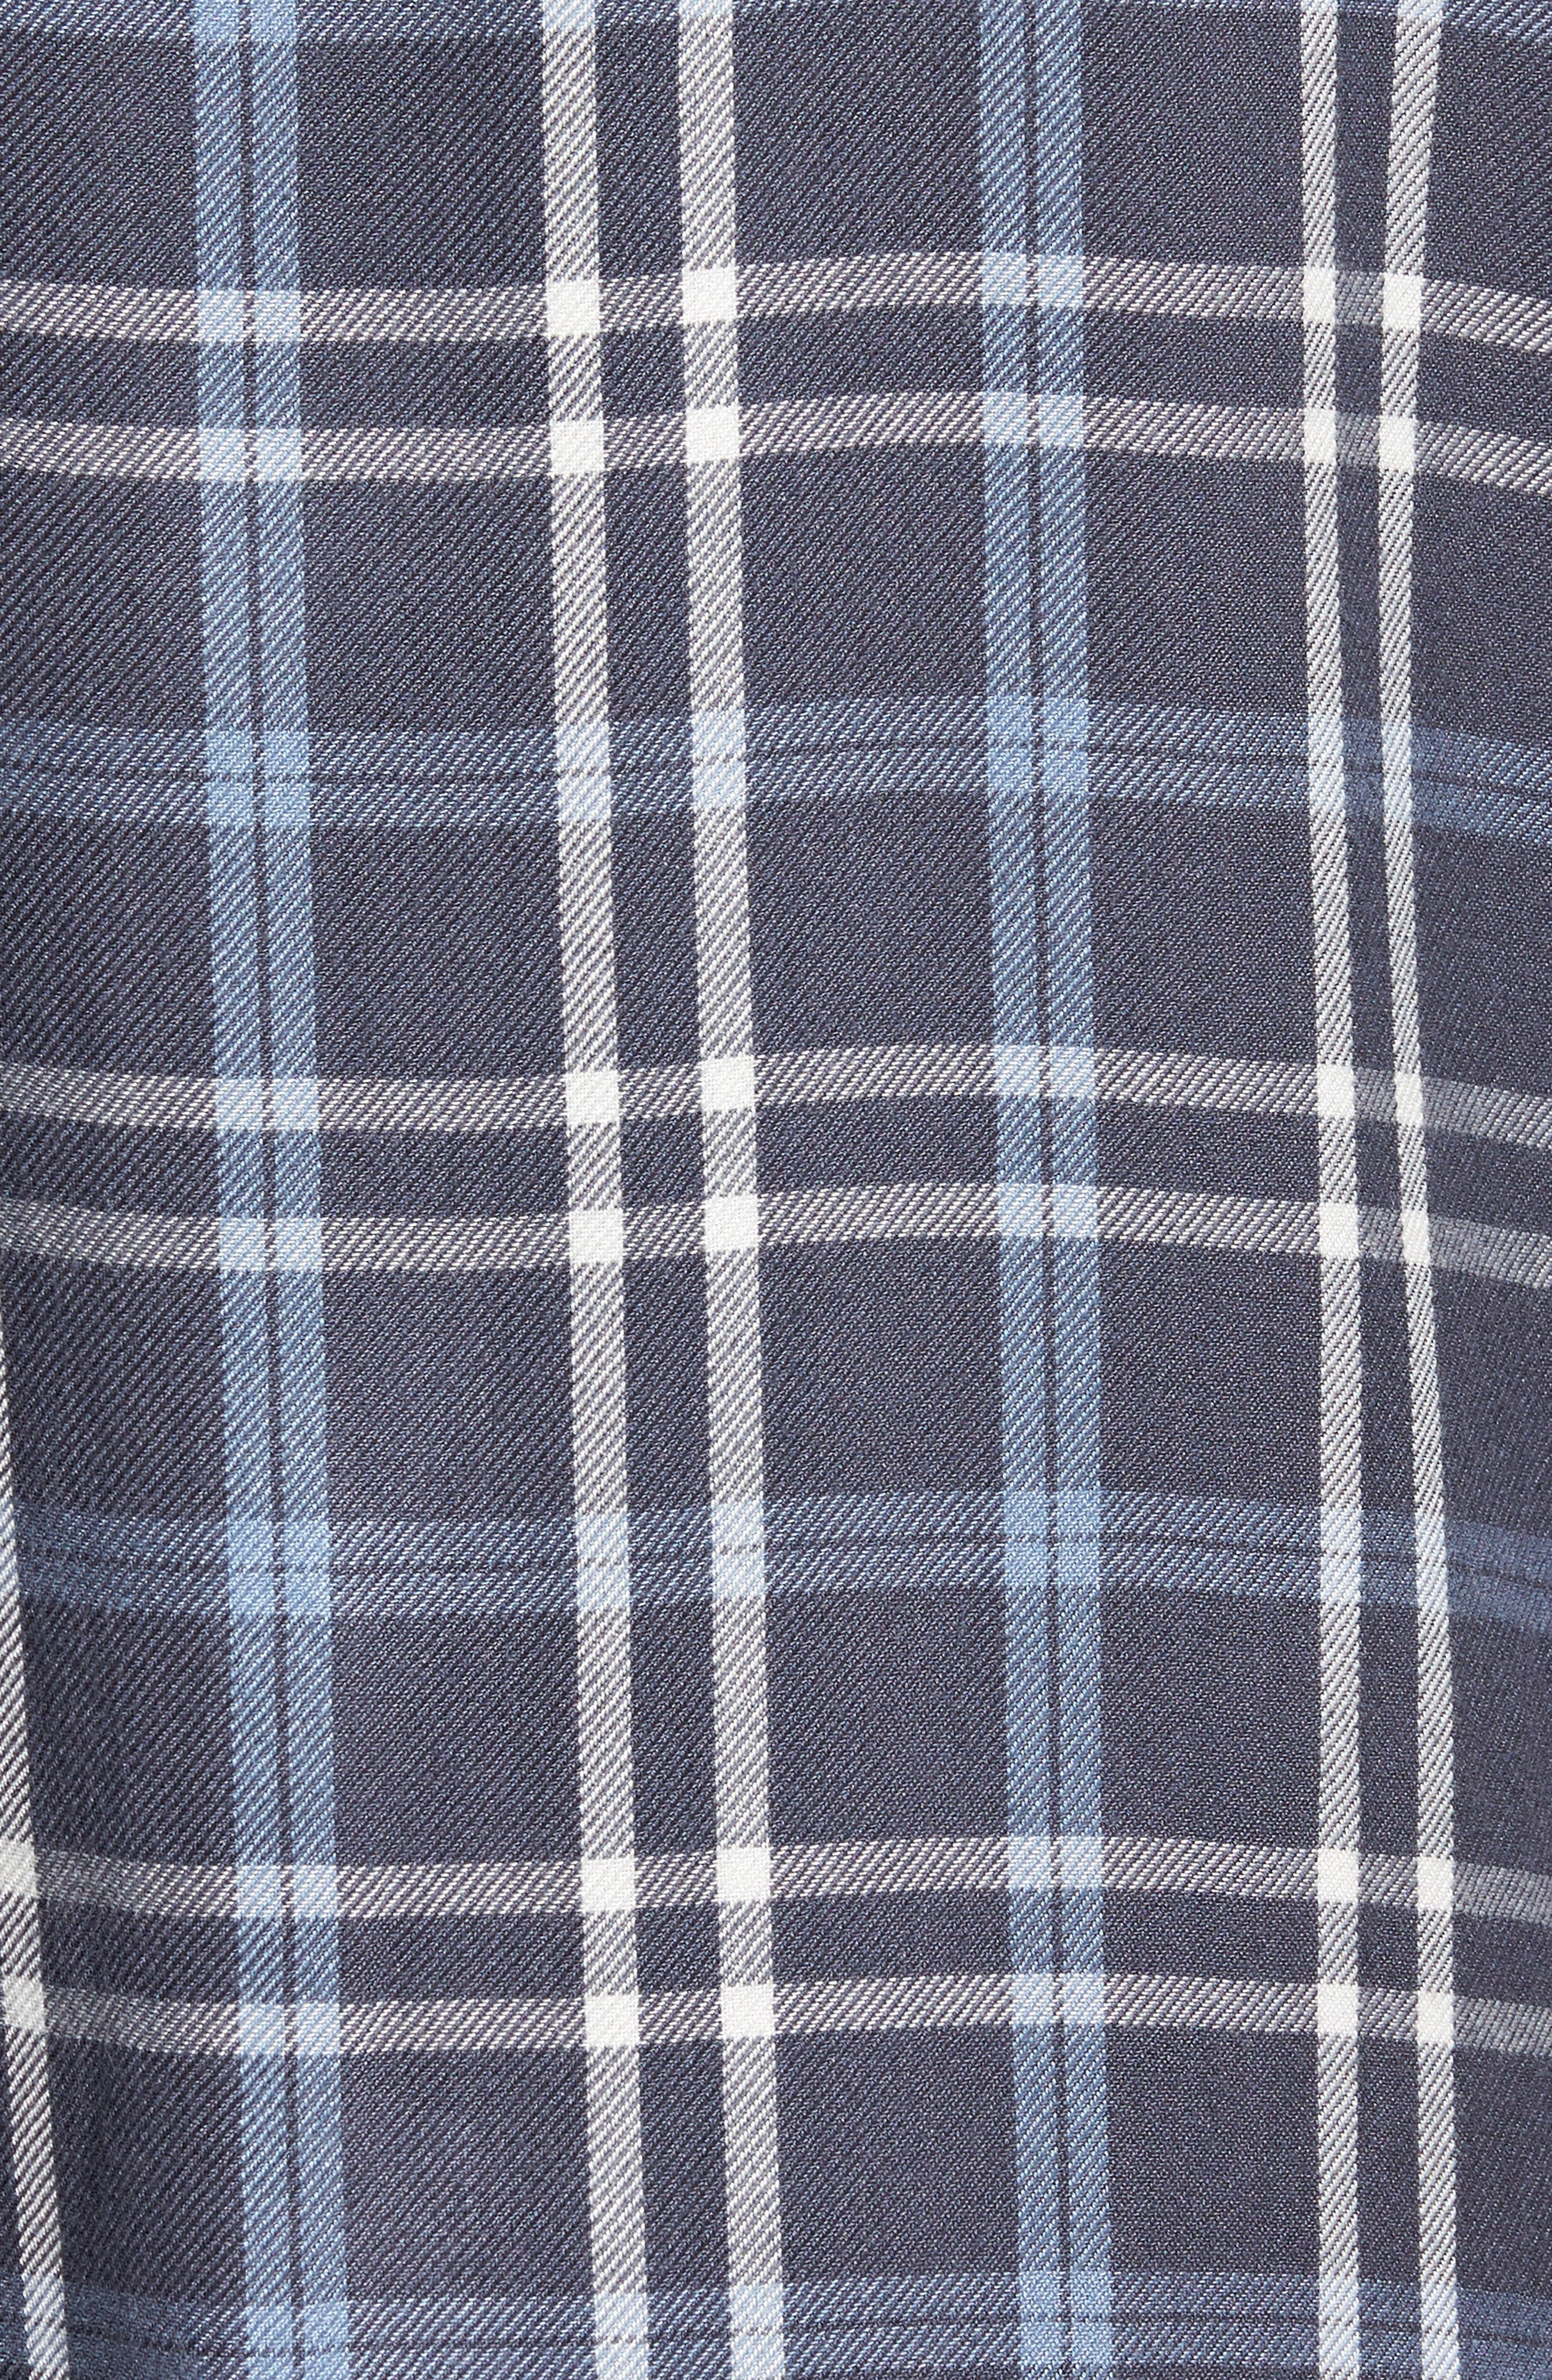 Yarn Dyed Plaid Shirt,                             Alternate thumbnail 5, color,                             Blue Grisaille Plaid